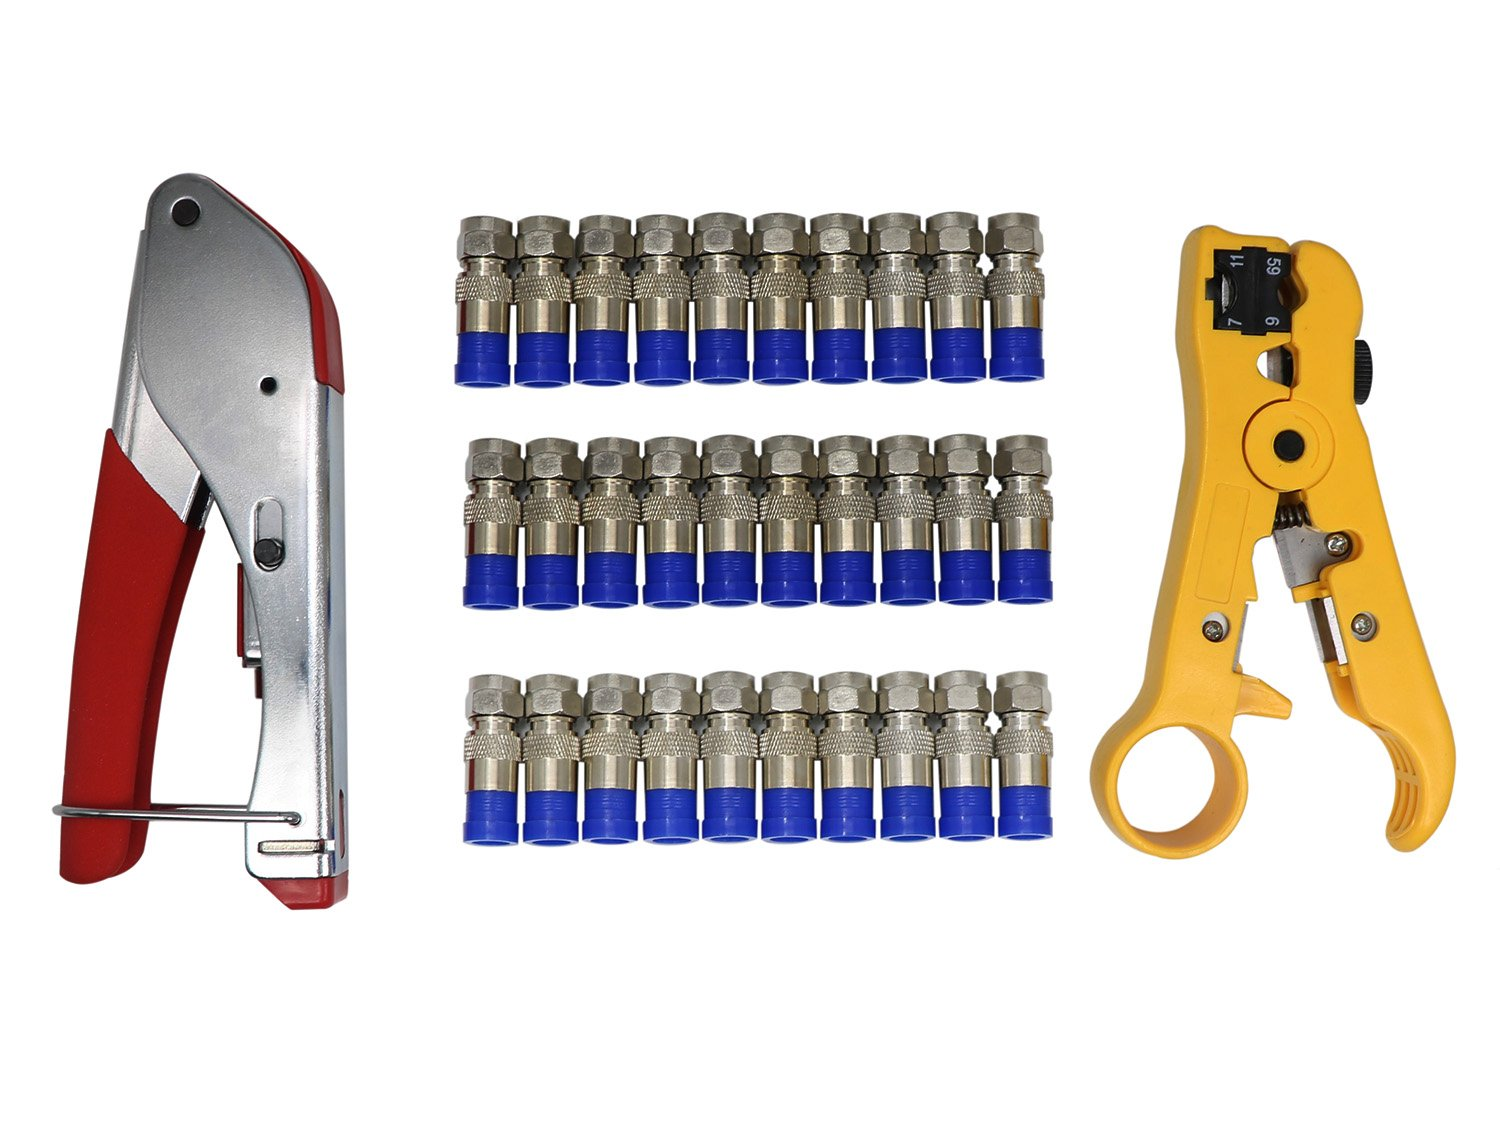 Coax Cable Crimper Kit Tool for RG6 RG59 Coaxial Compression Tool Fitting Wire Stripper with 30 PCS F Compression Connectors by JORCC